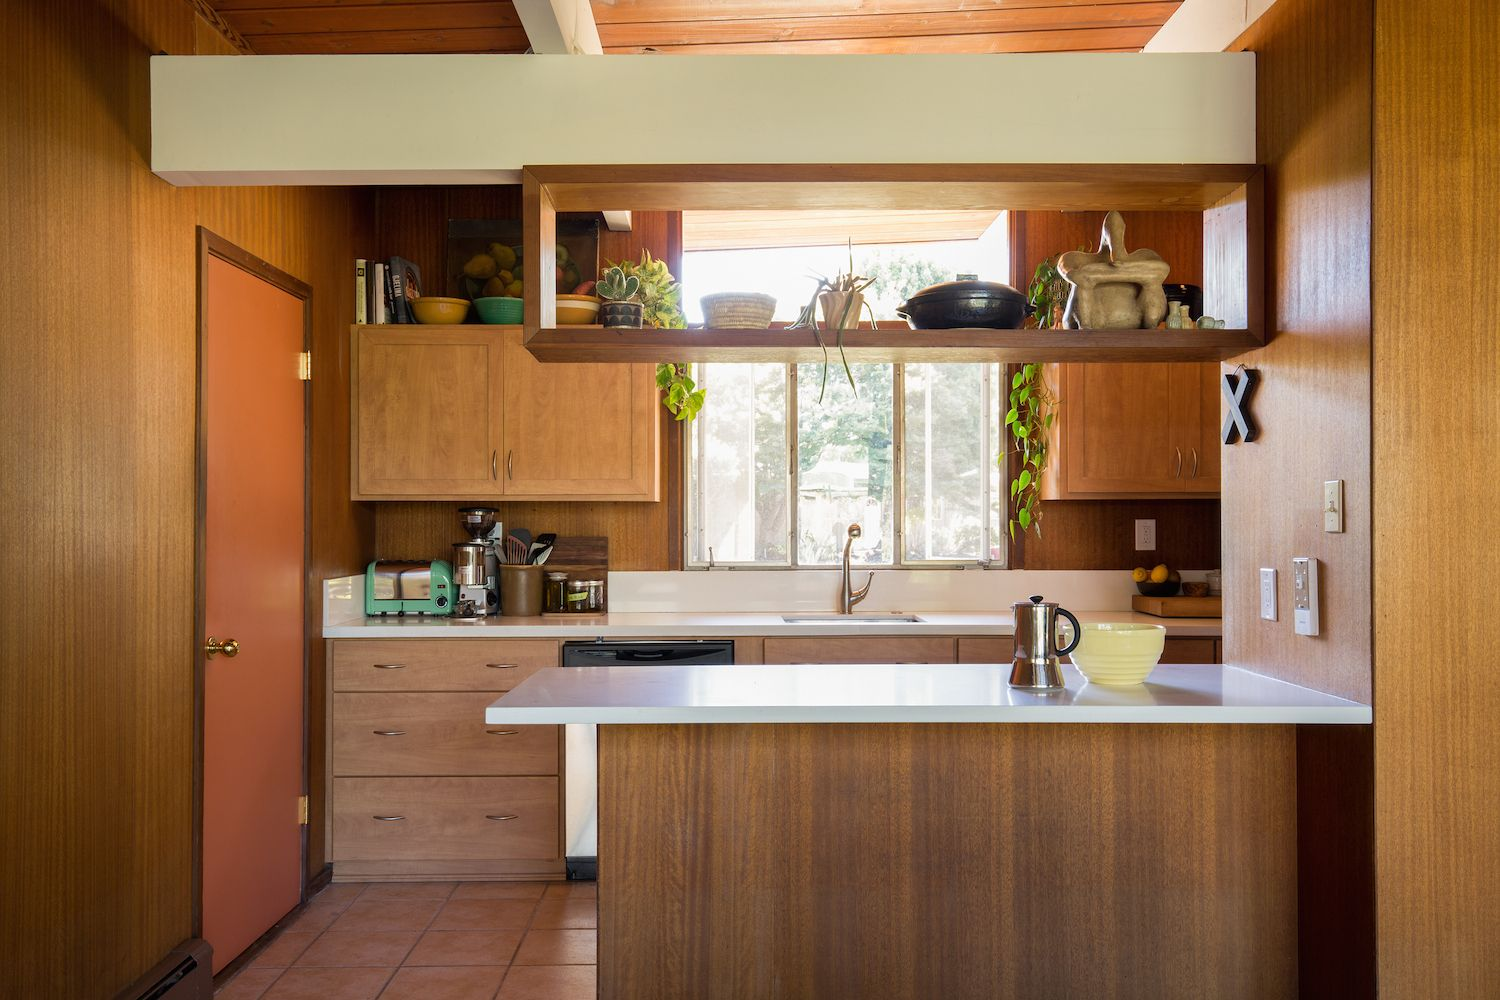 20 Charming Midcentury Kitchens Ranked From Virtually Untouched To Fully Renovate Mid Century Modern Kitchen Renovation Kitchen Design Kitchen Cabinet Remodel